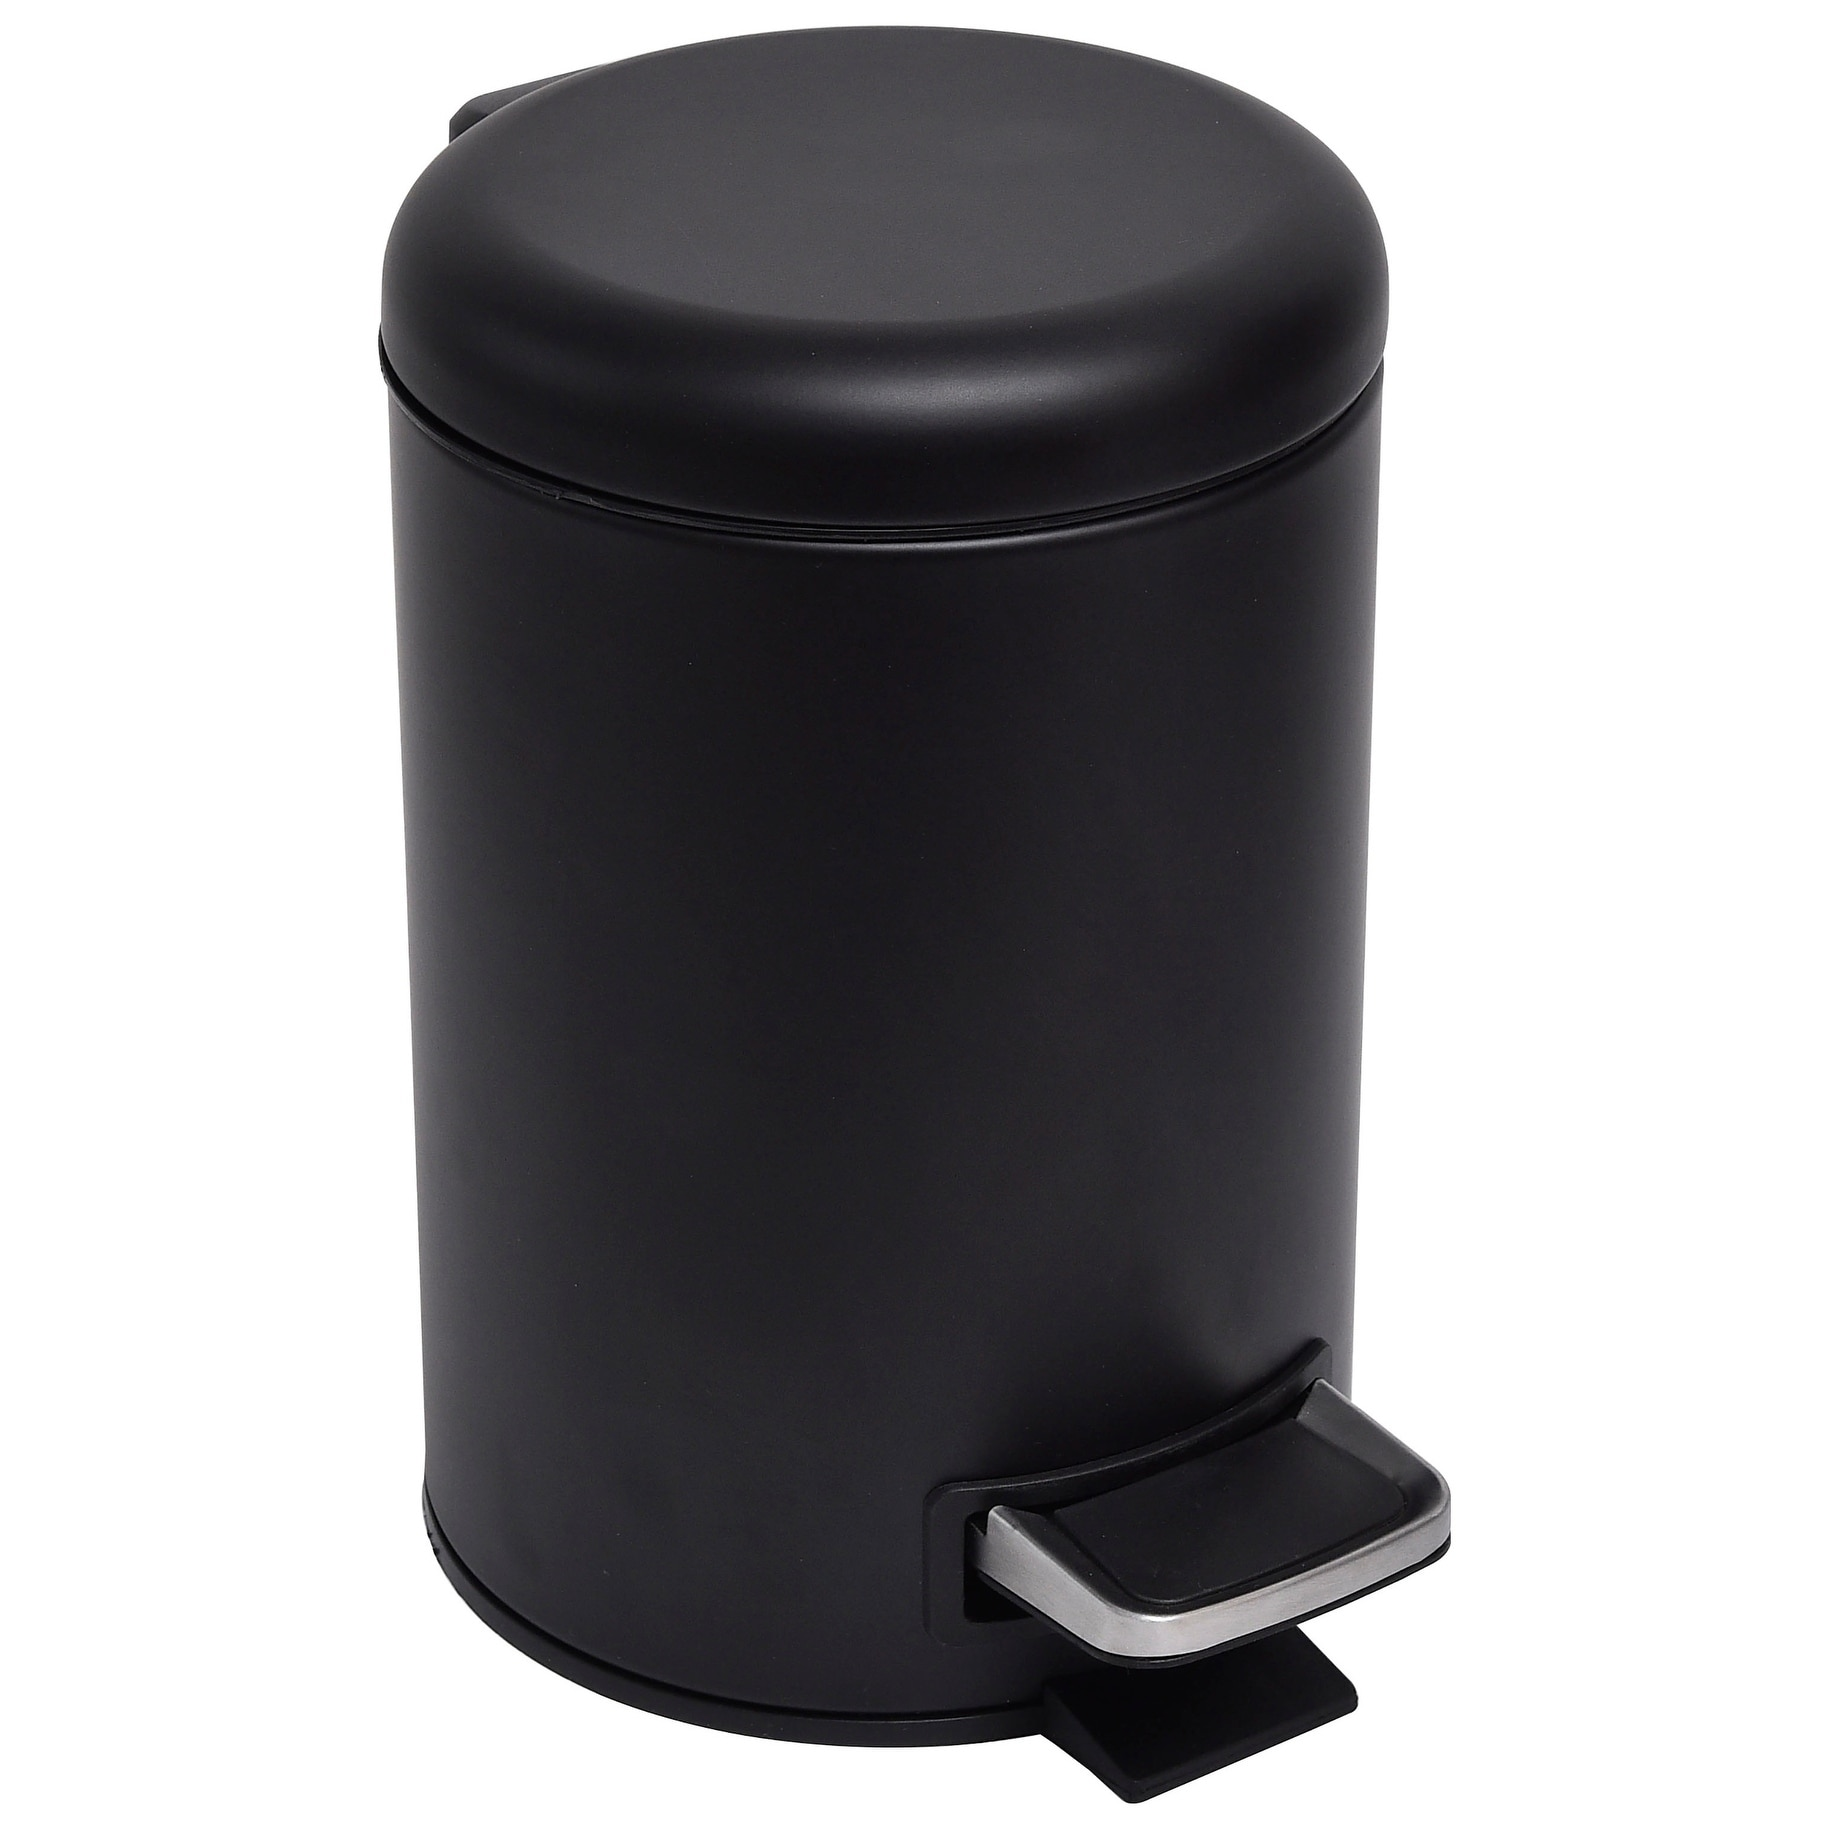 Shop For Evideco Soft Close Small Round Metal Bathroom Floor Step Trash Can Get Free Delivery On Everything At Overstock Your Online Bathroom Accessories Store Get 5 In Rewards With Club O 20538660